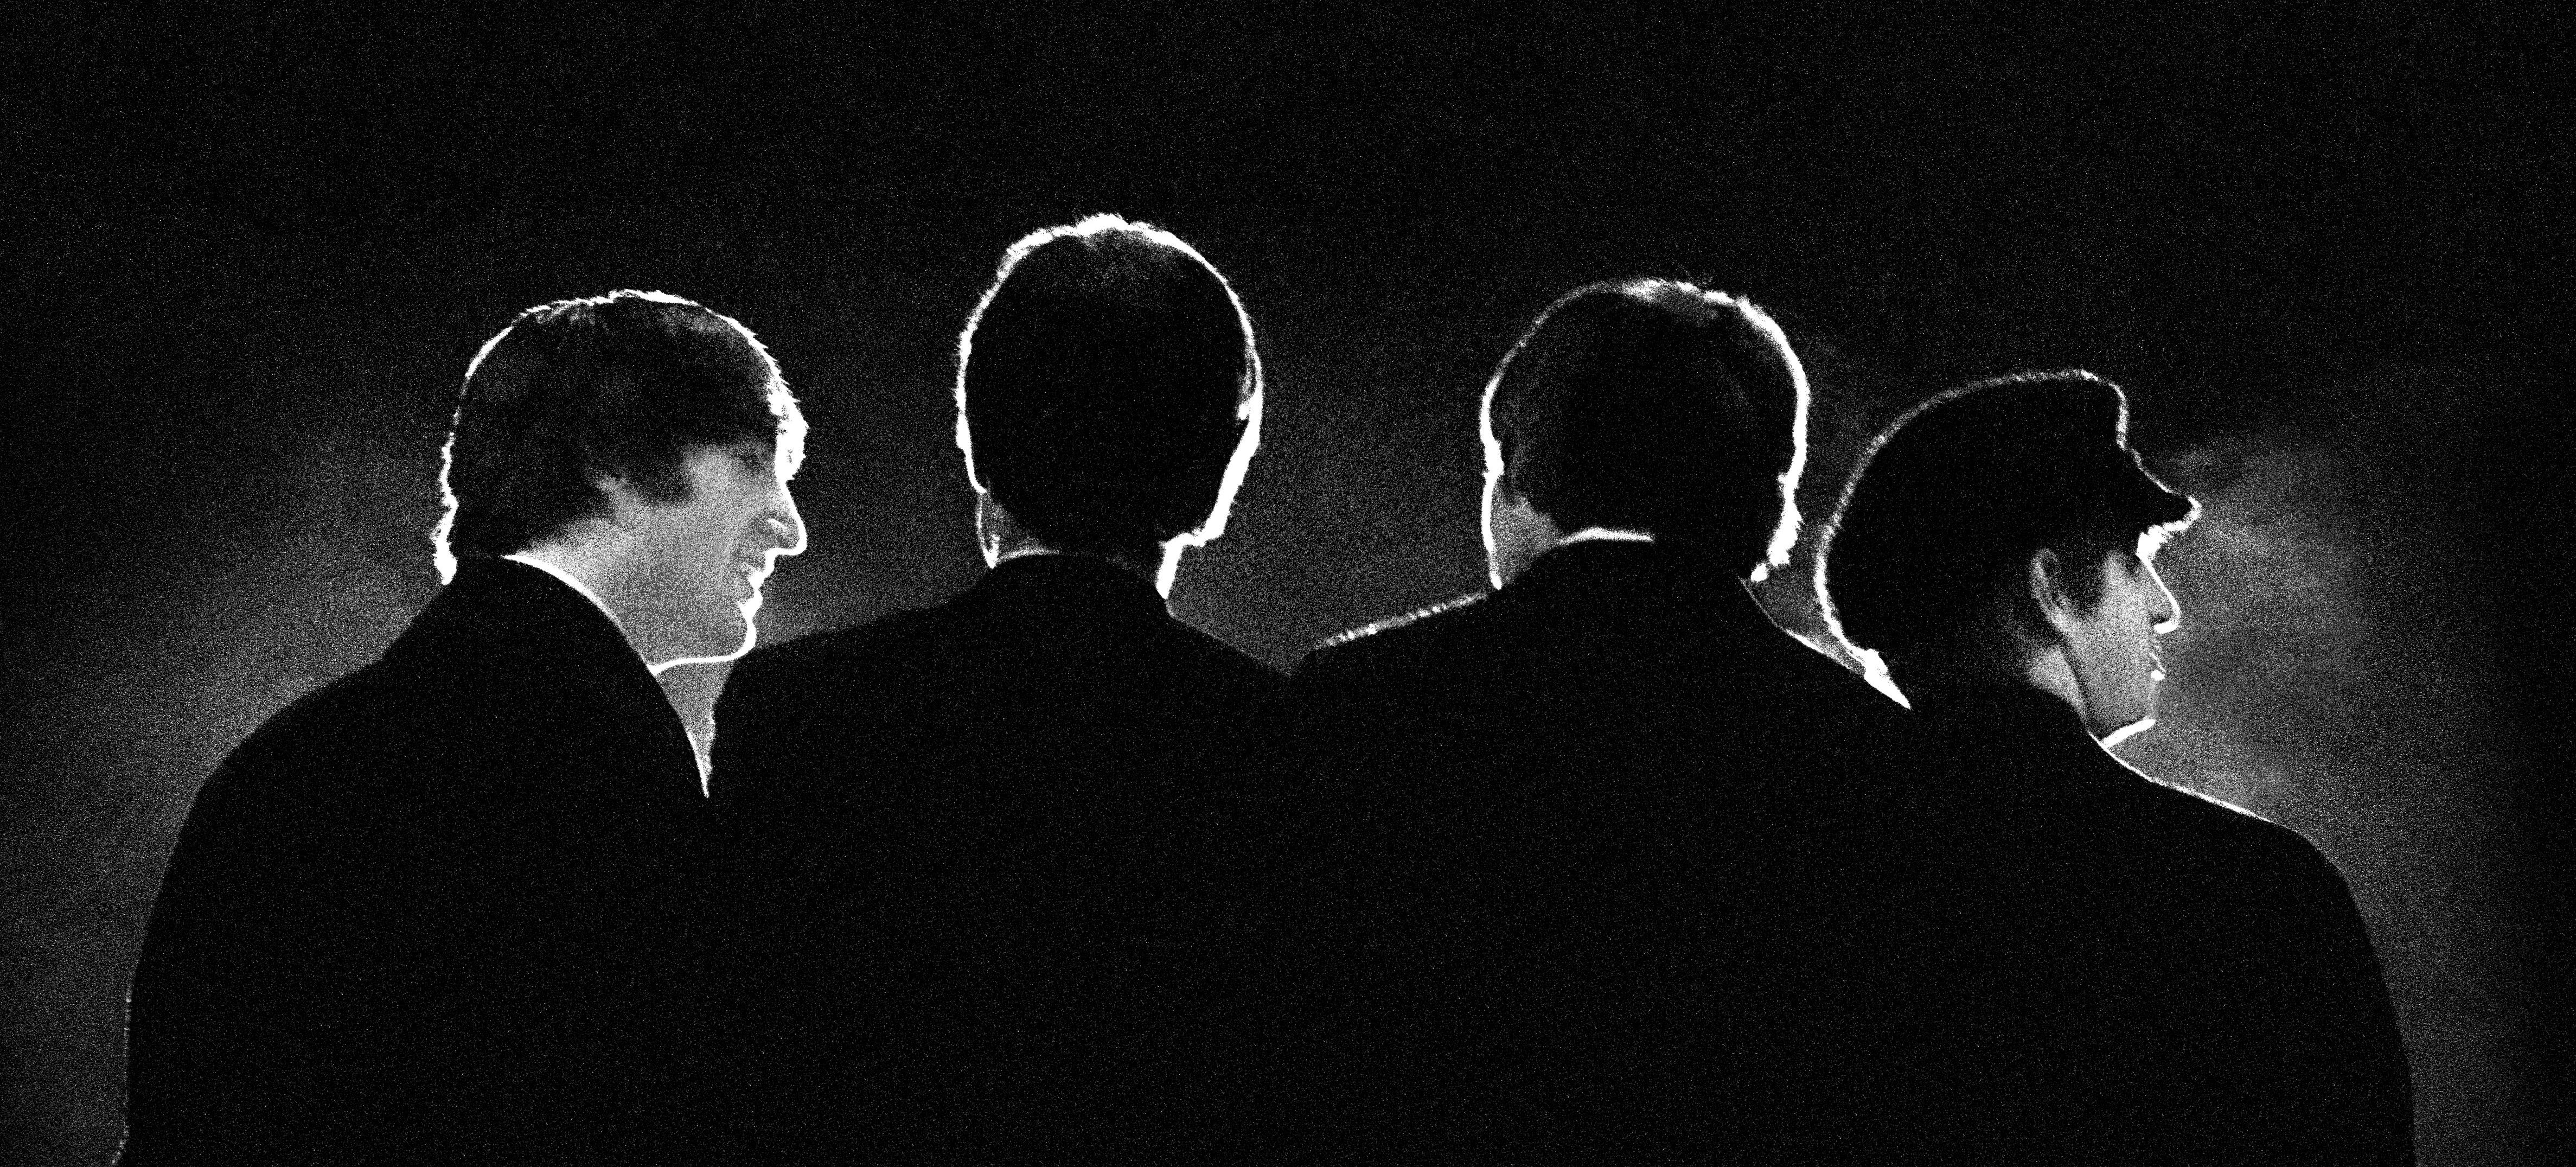 Beatles at the Washington Coliseum, February 11, 1964. (Credit: Mike Mitchell)